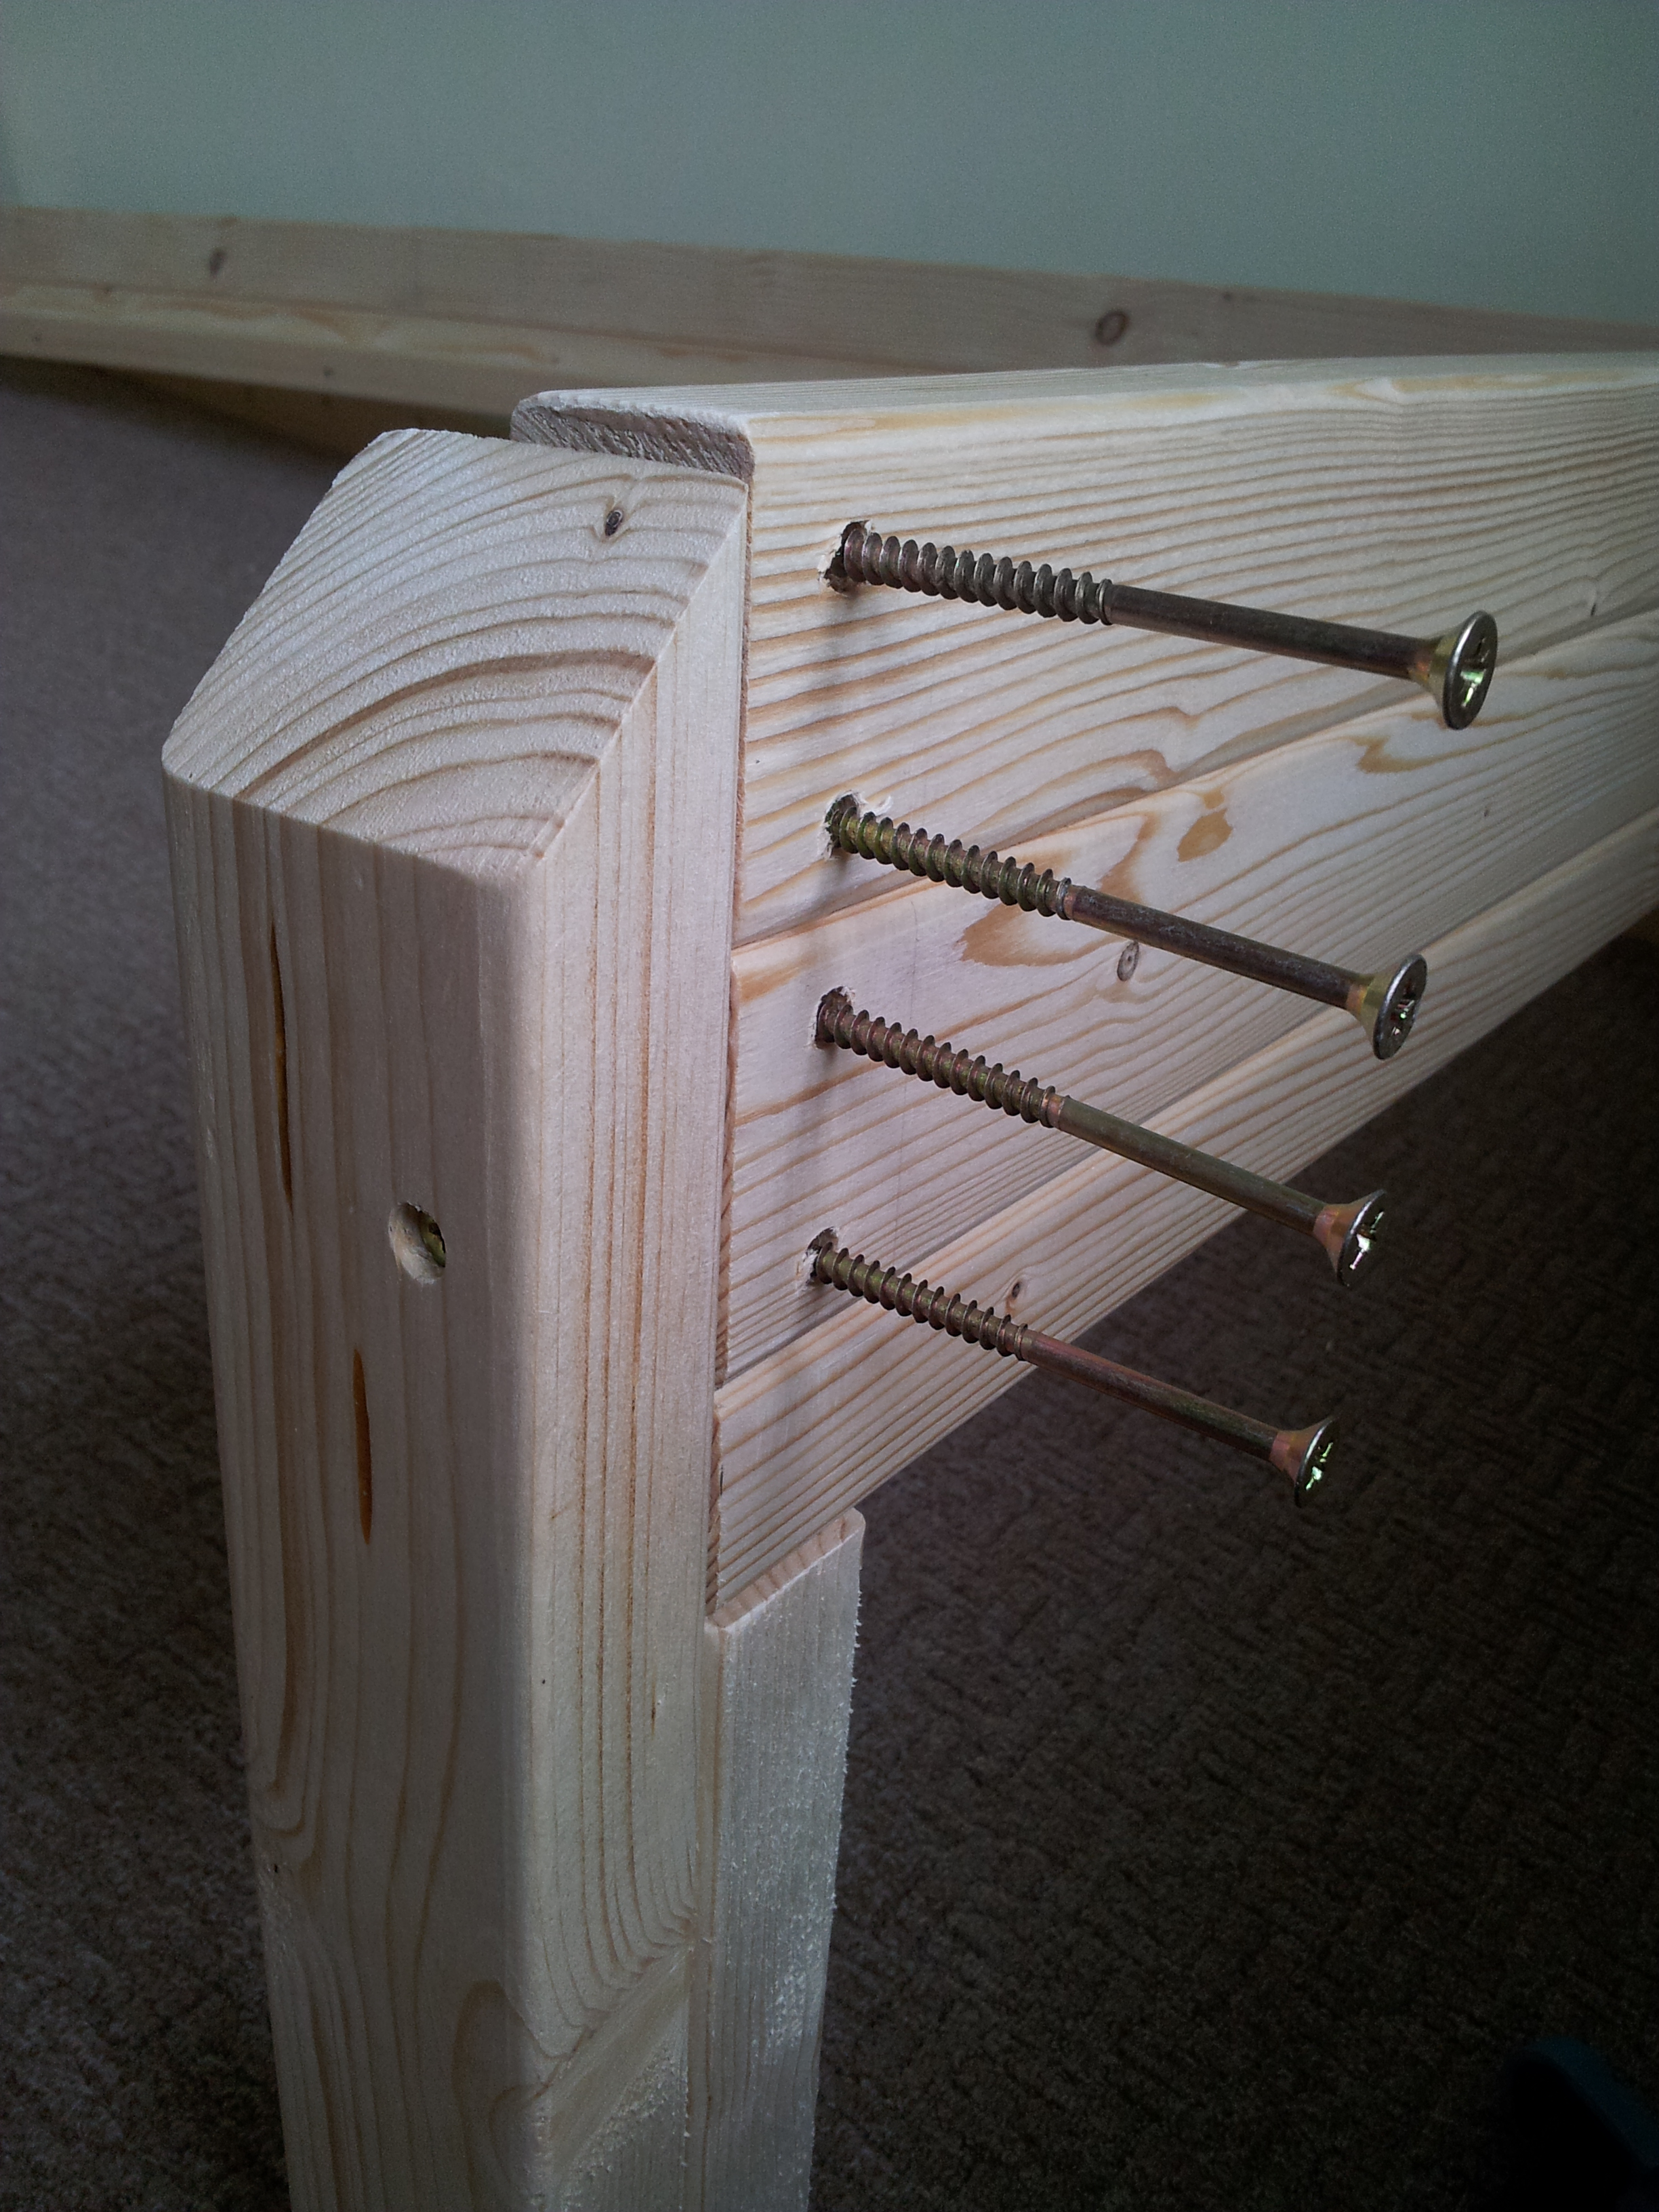 Single Bed 4 Steps Instructables